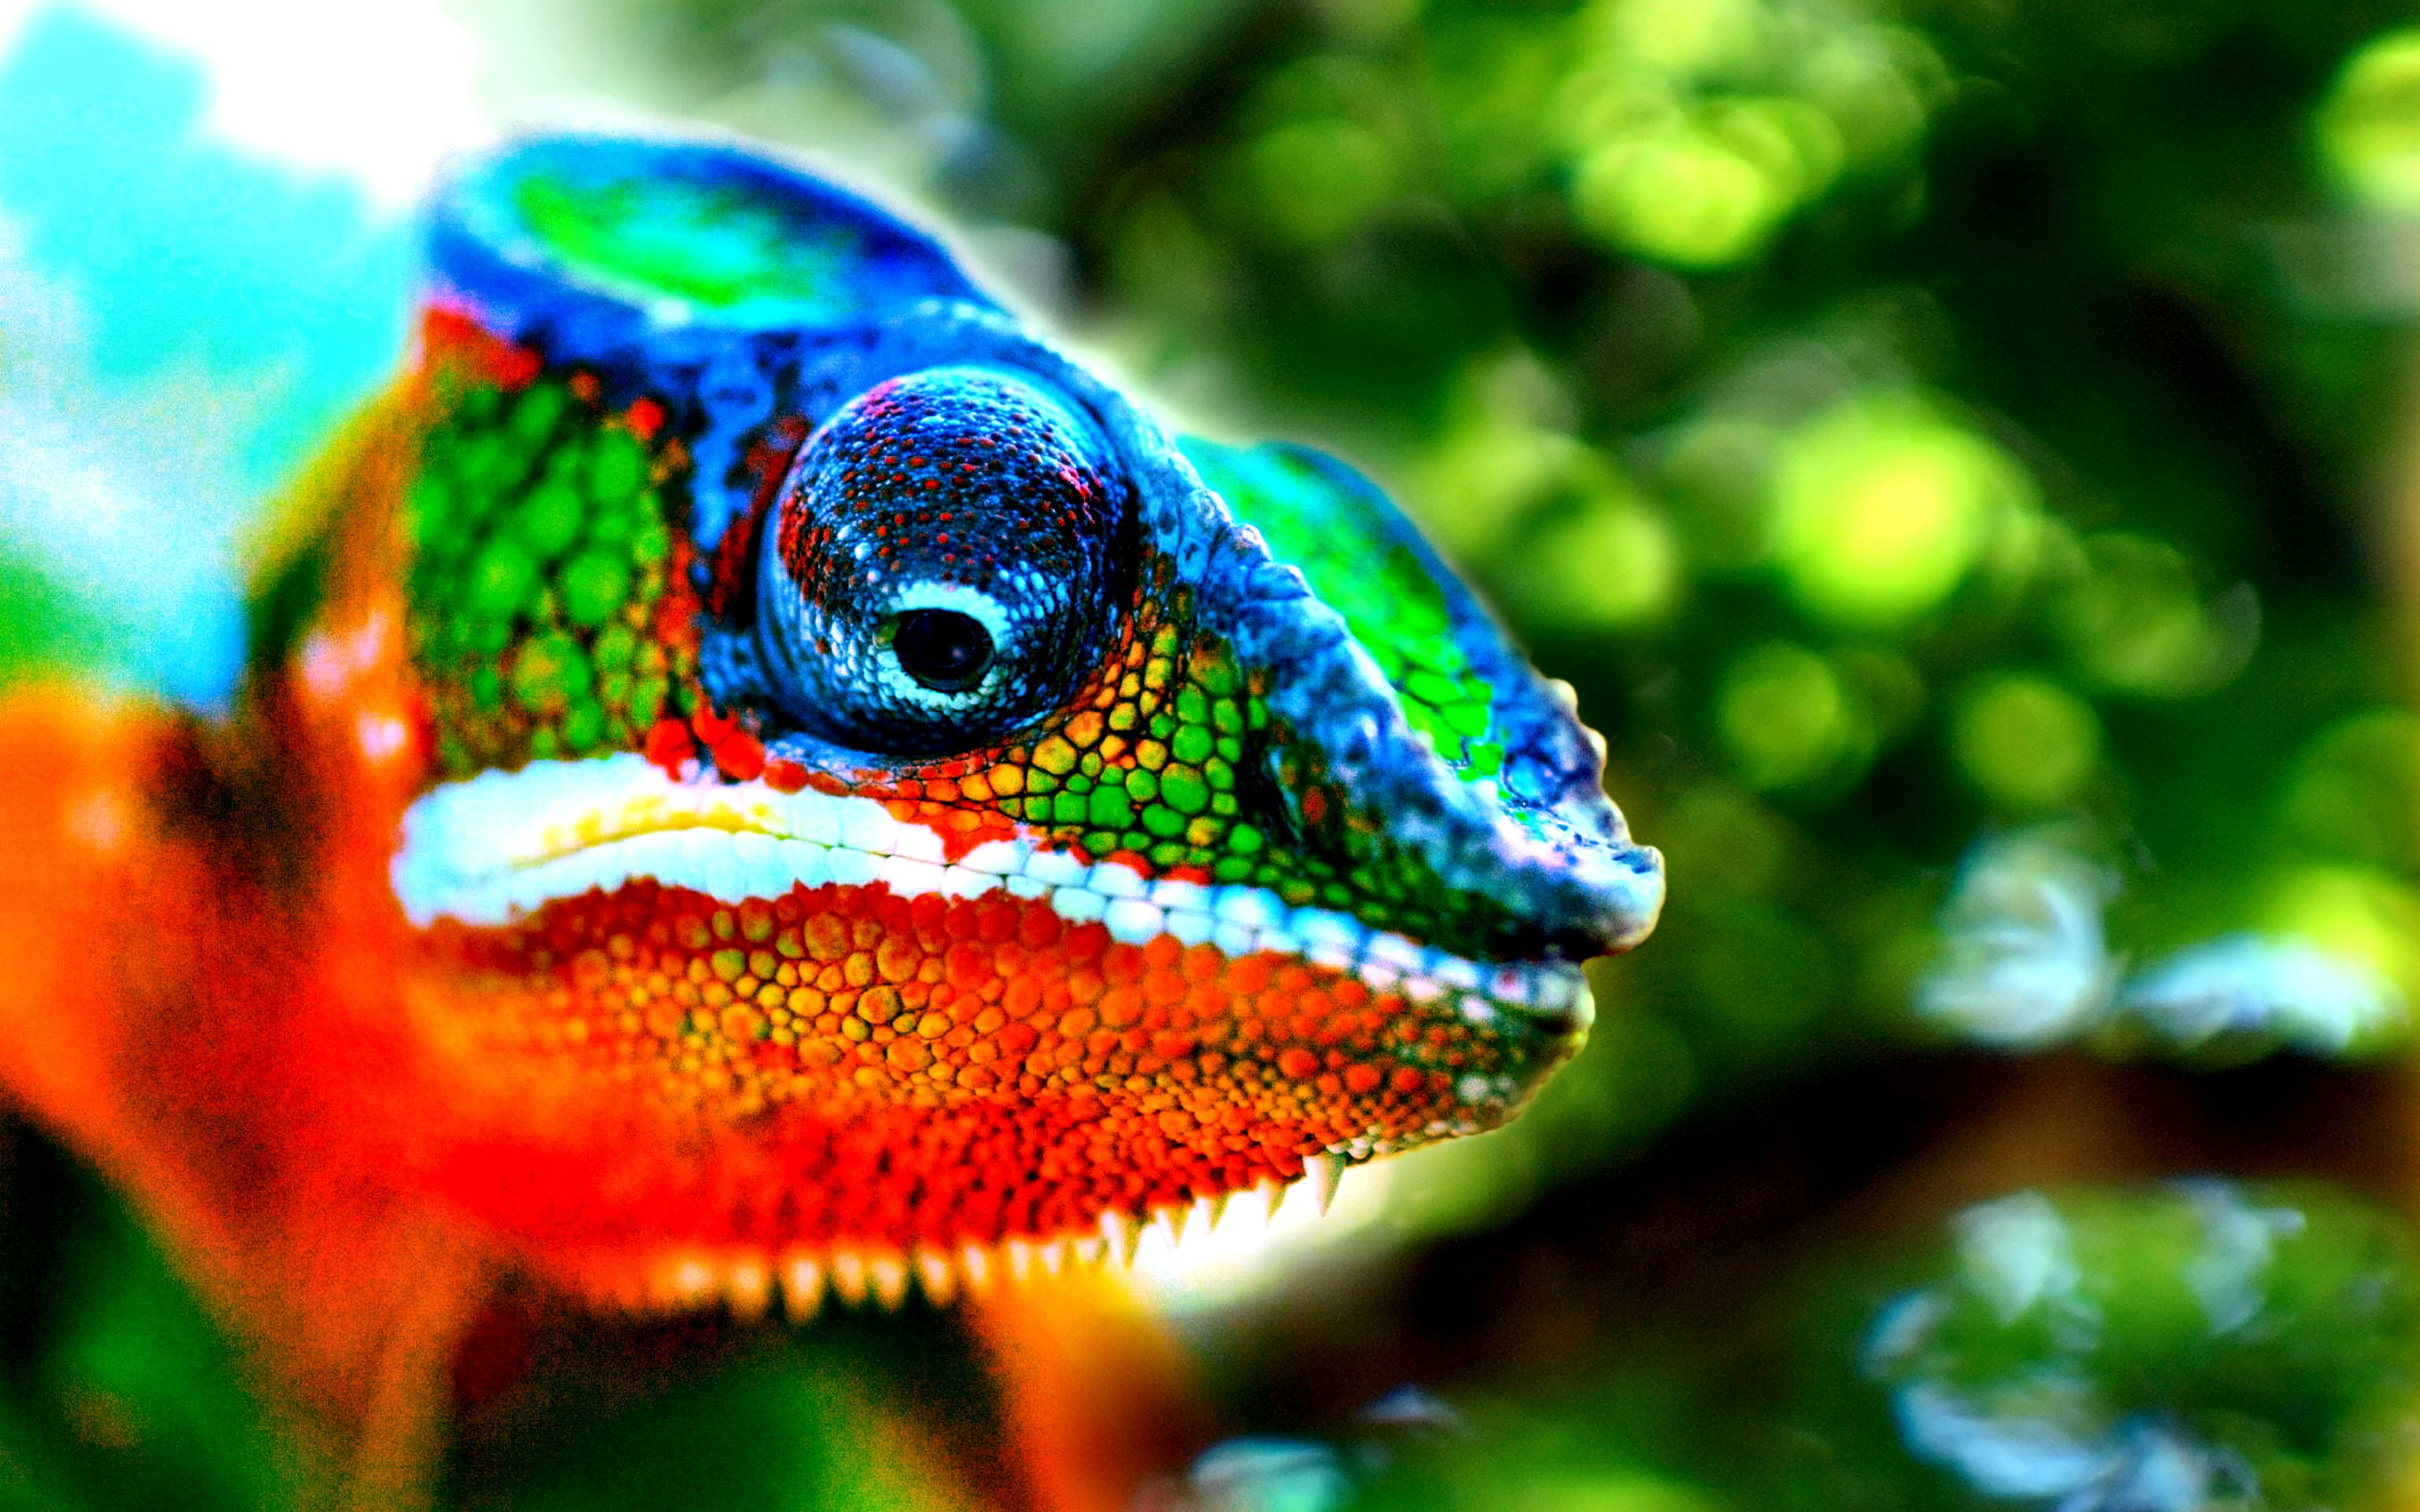 Colorful animal wallpaper